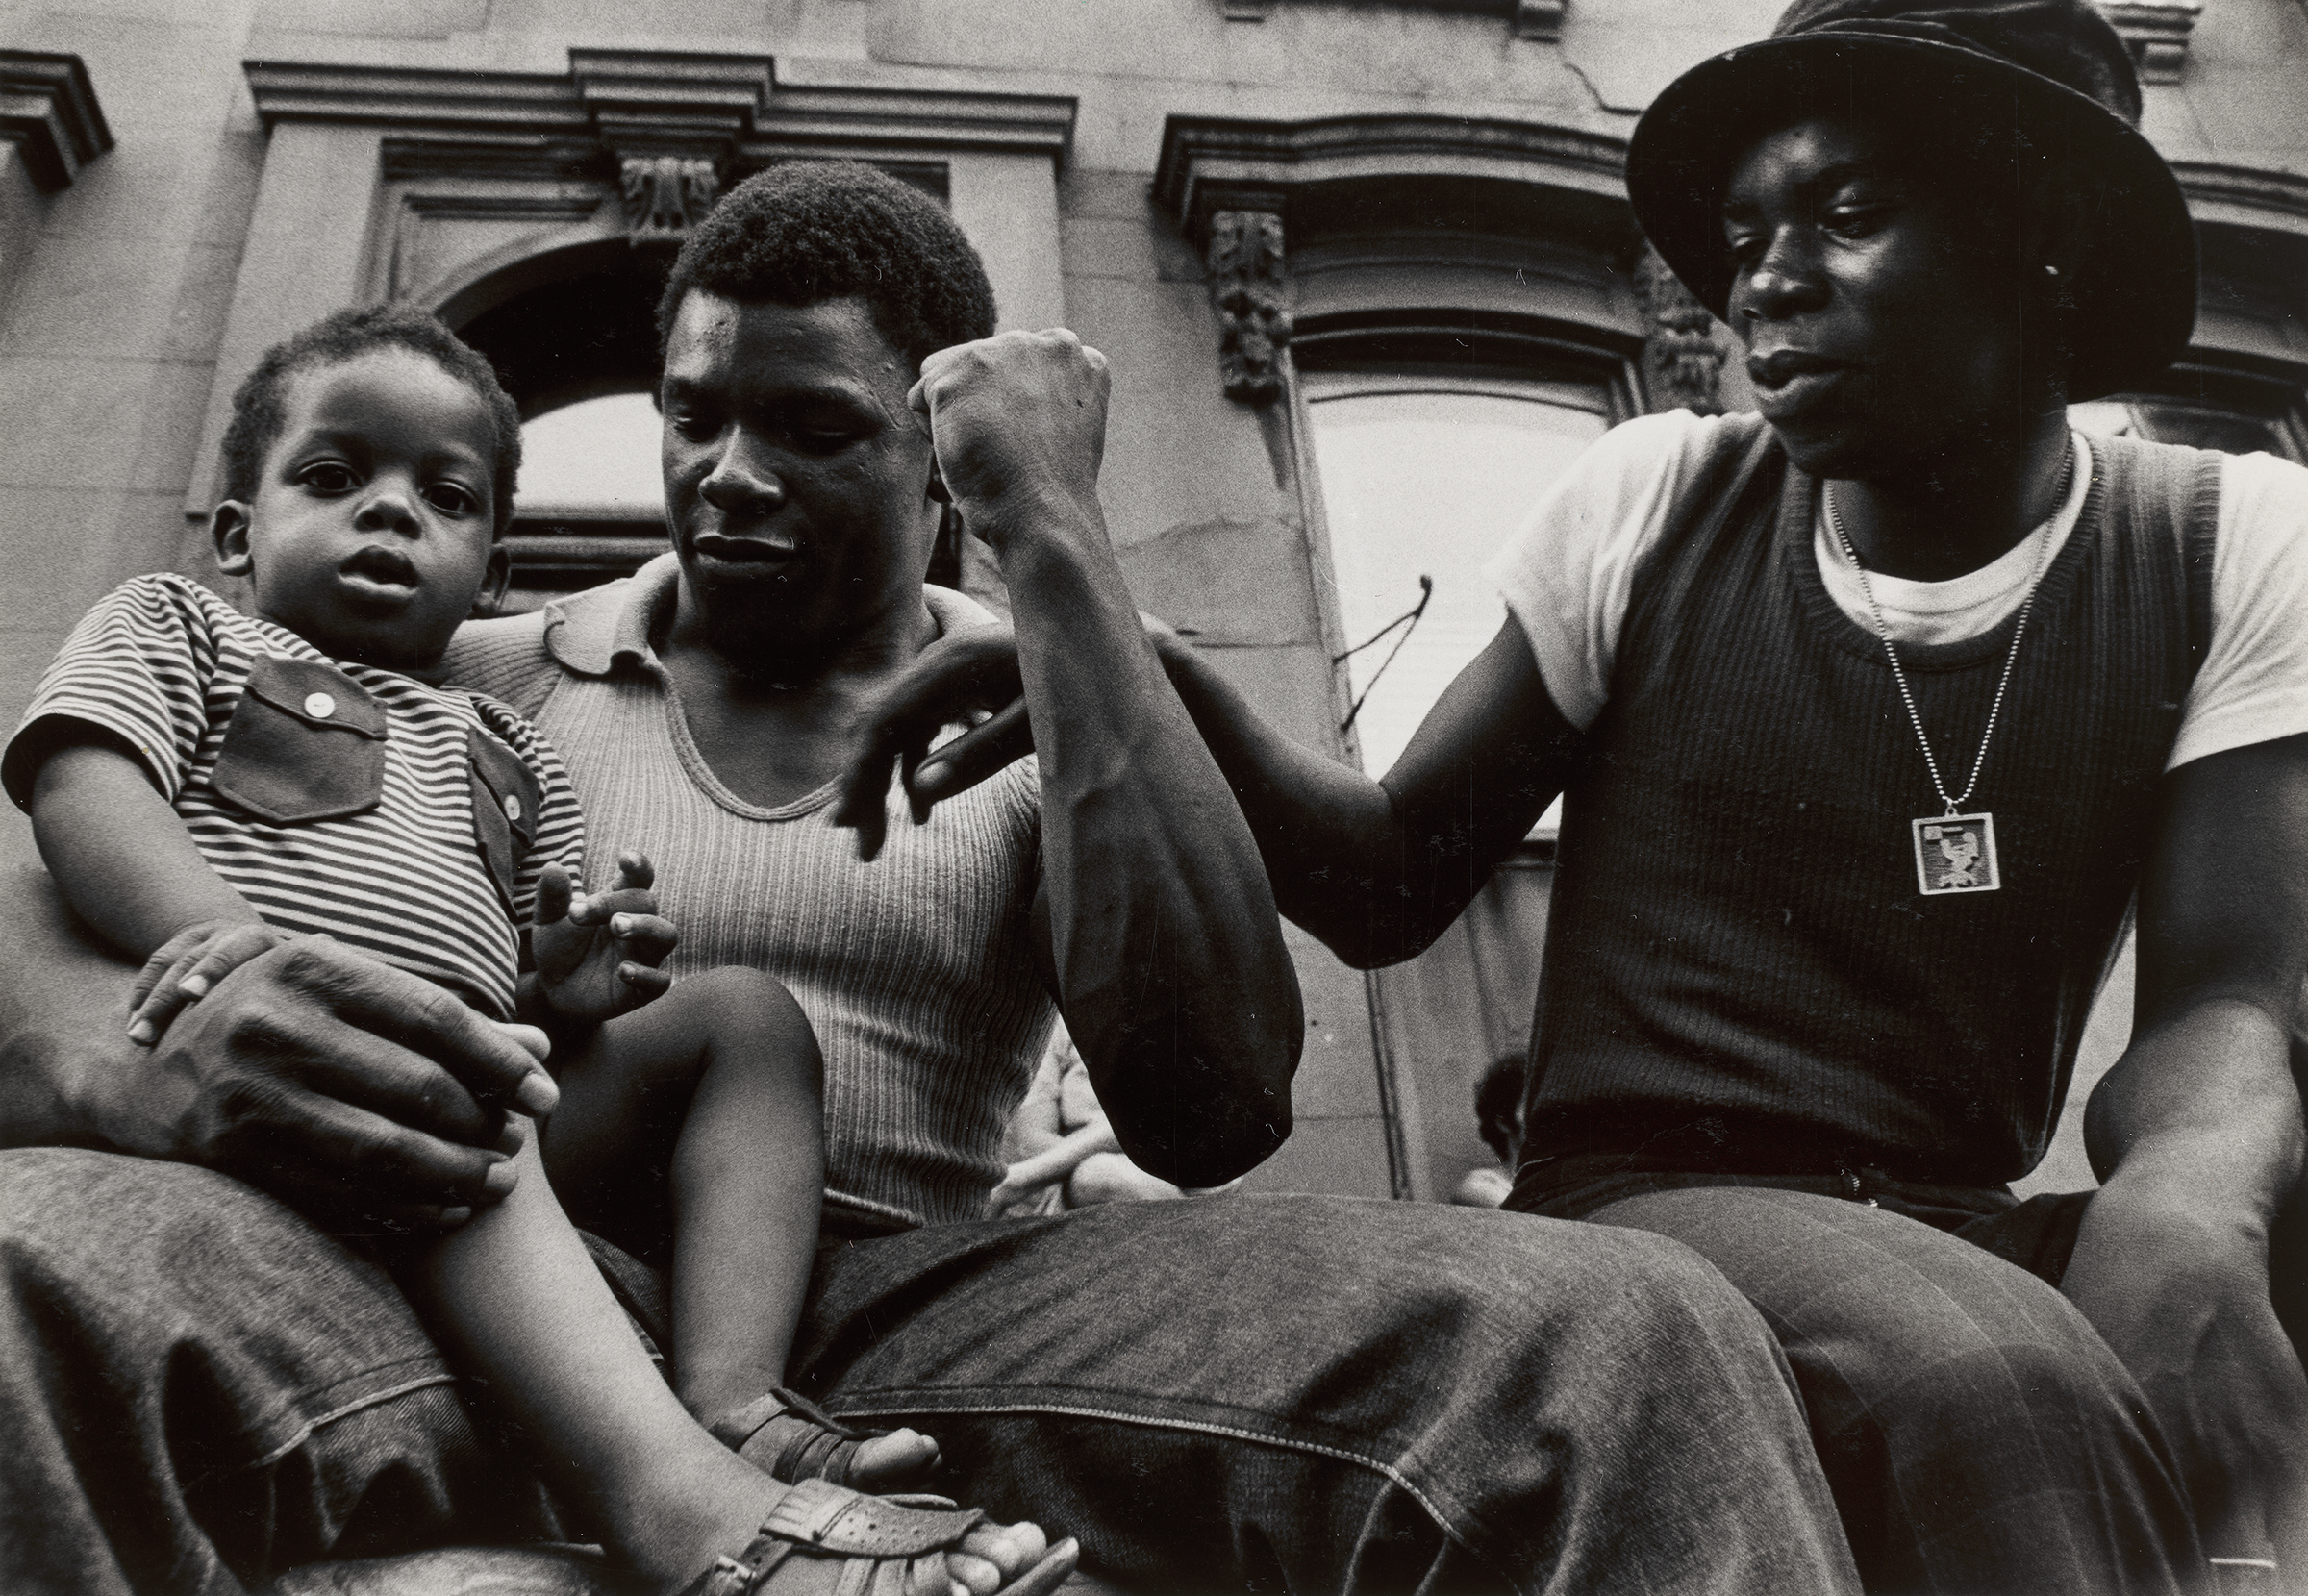 """Chester Higgins,  Male bonding , 1973  Gelatin silver print,6 13/16""""H × 9⅞""""W  Collection of the Artist. Courtesy of the Virginia Museum of Fine Arts, Richmond"""